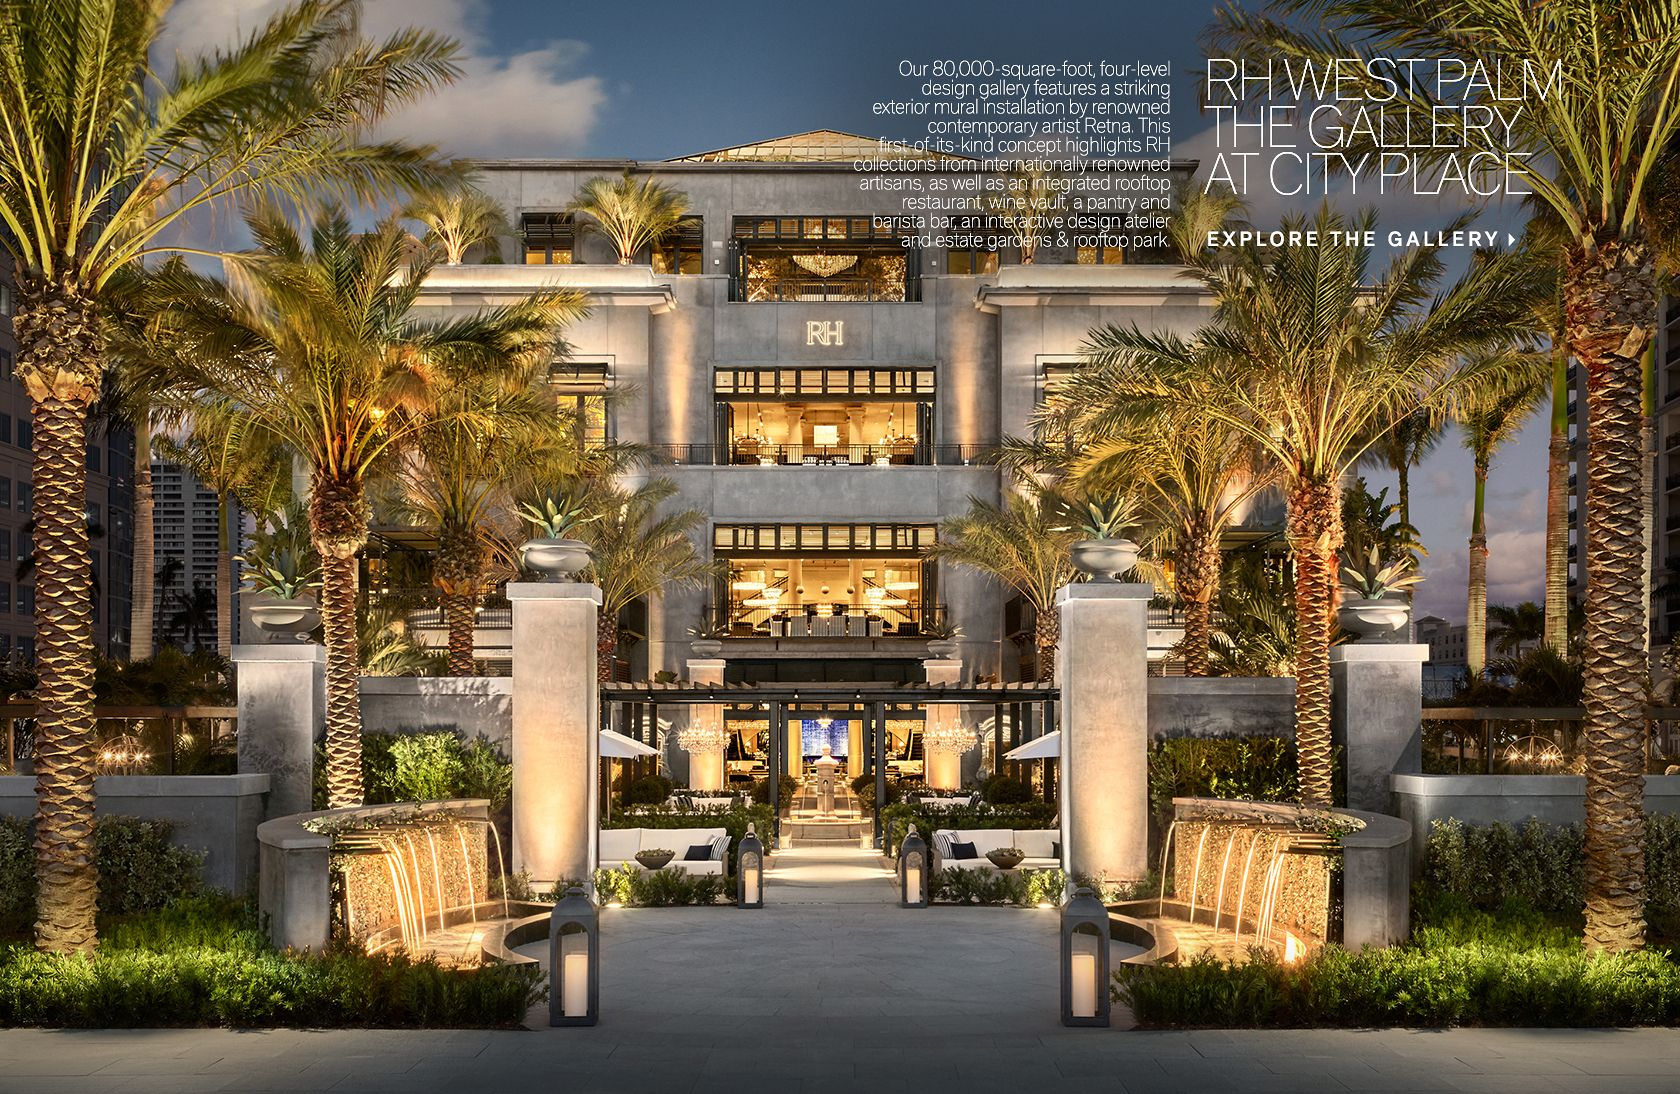 RH West Palm - The Gallery at City Place